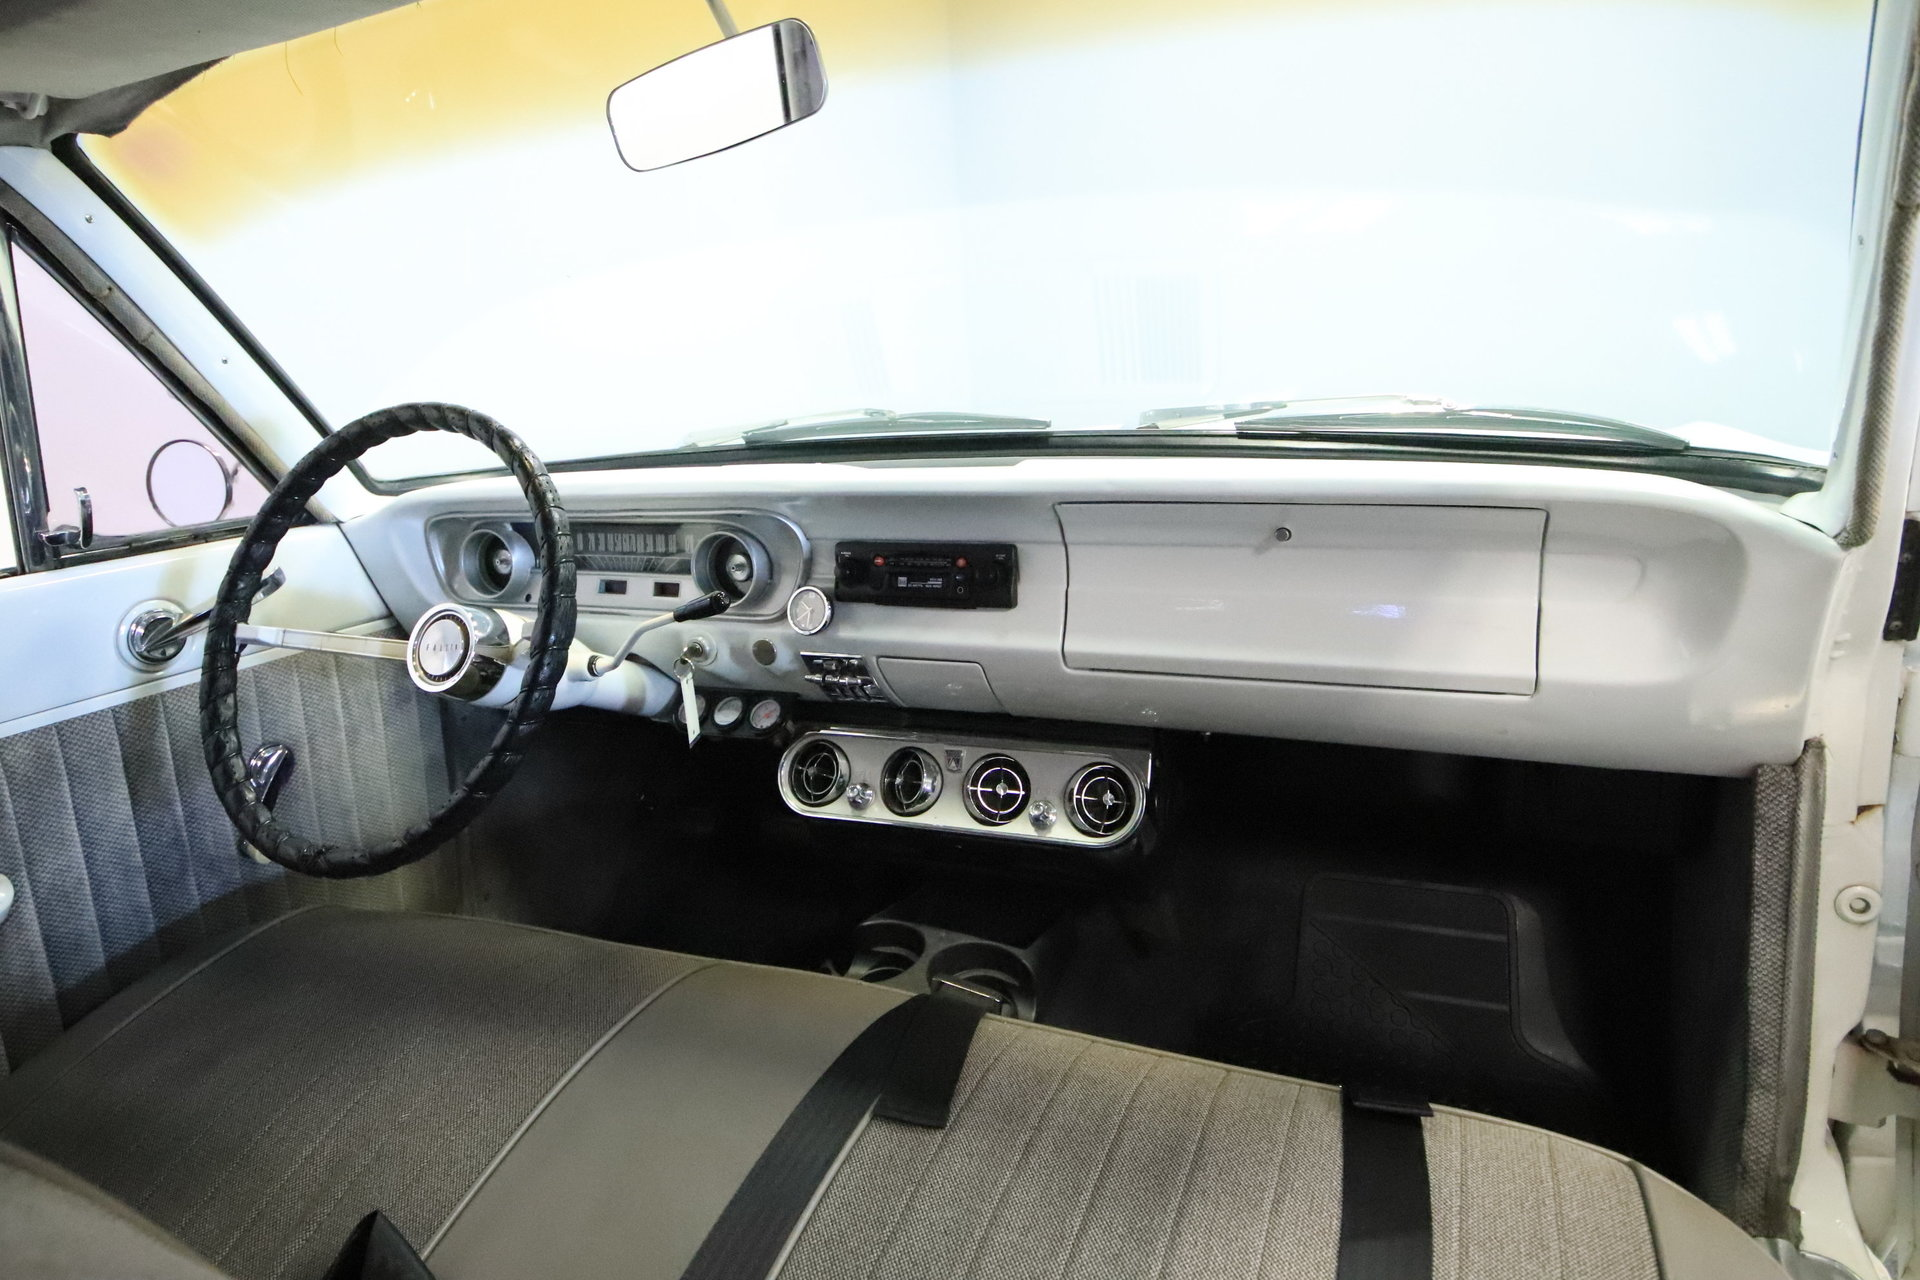 1964 Ford Falcon Streetside Classics The Nations Trusted Ranchero For Sale Spincar View 360